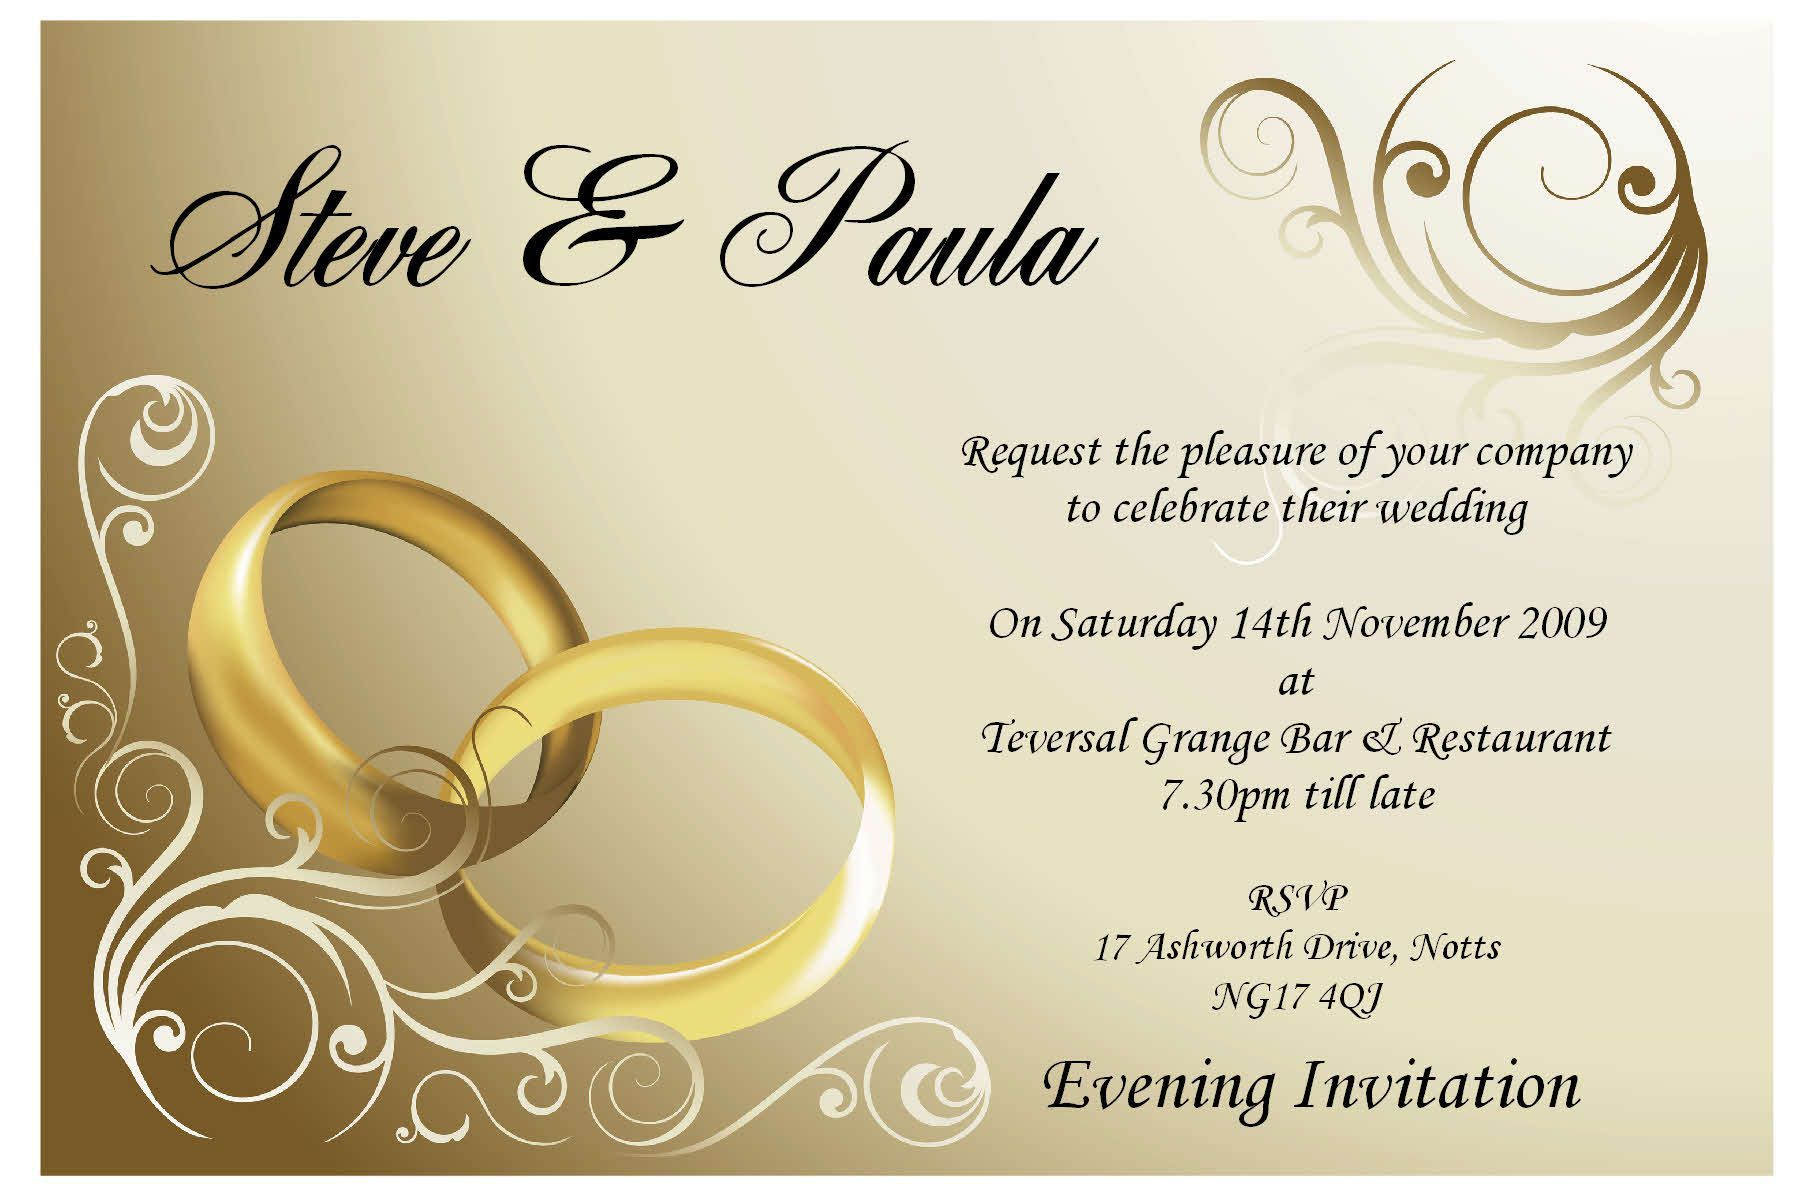 Wedding Invitation Card Design Online Free Invite Card Ideas